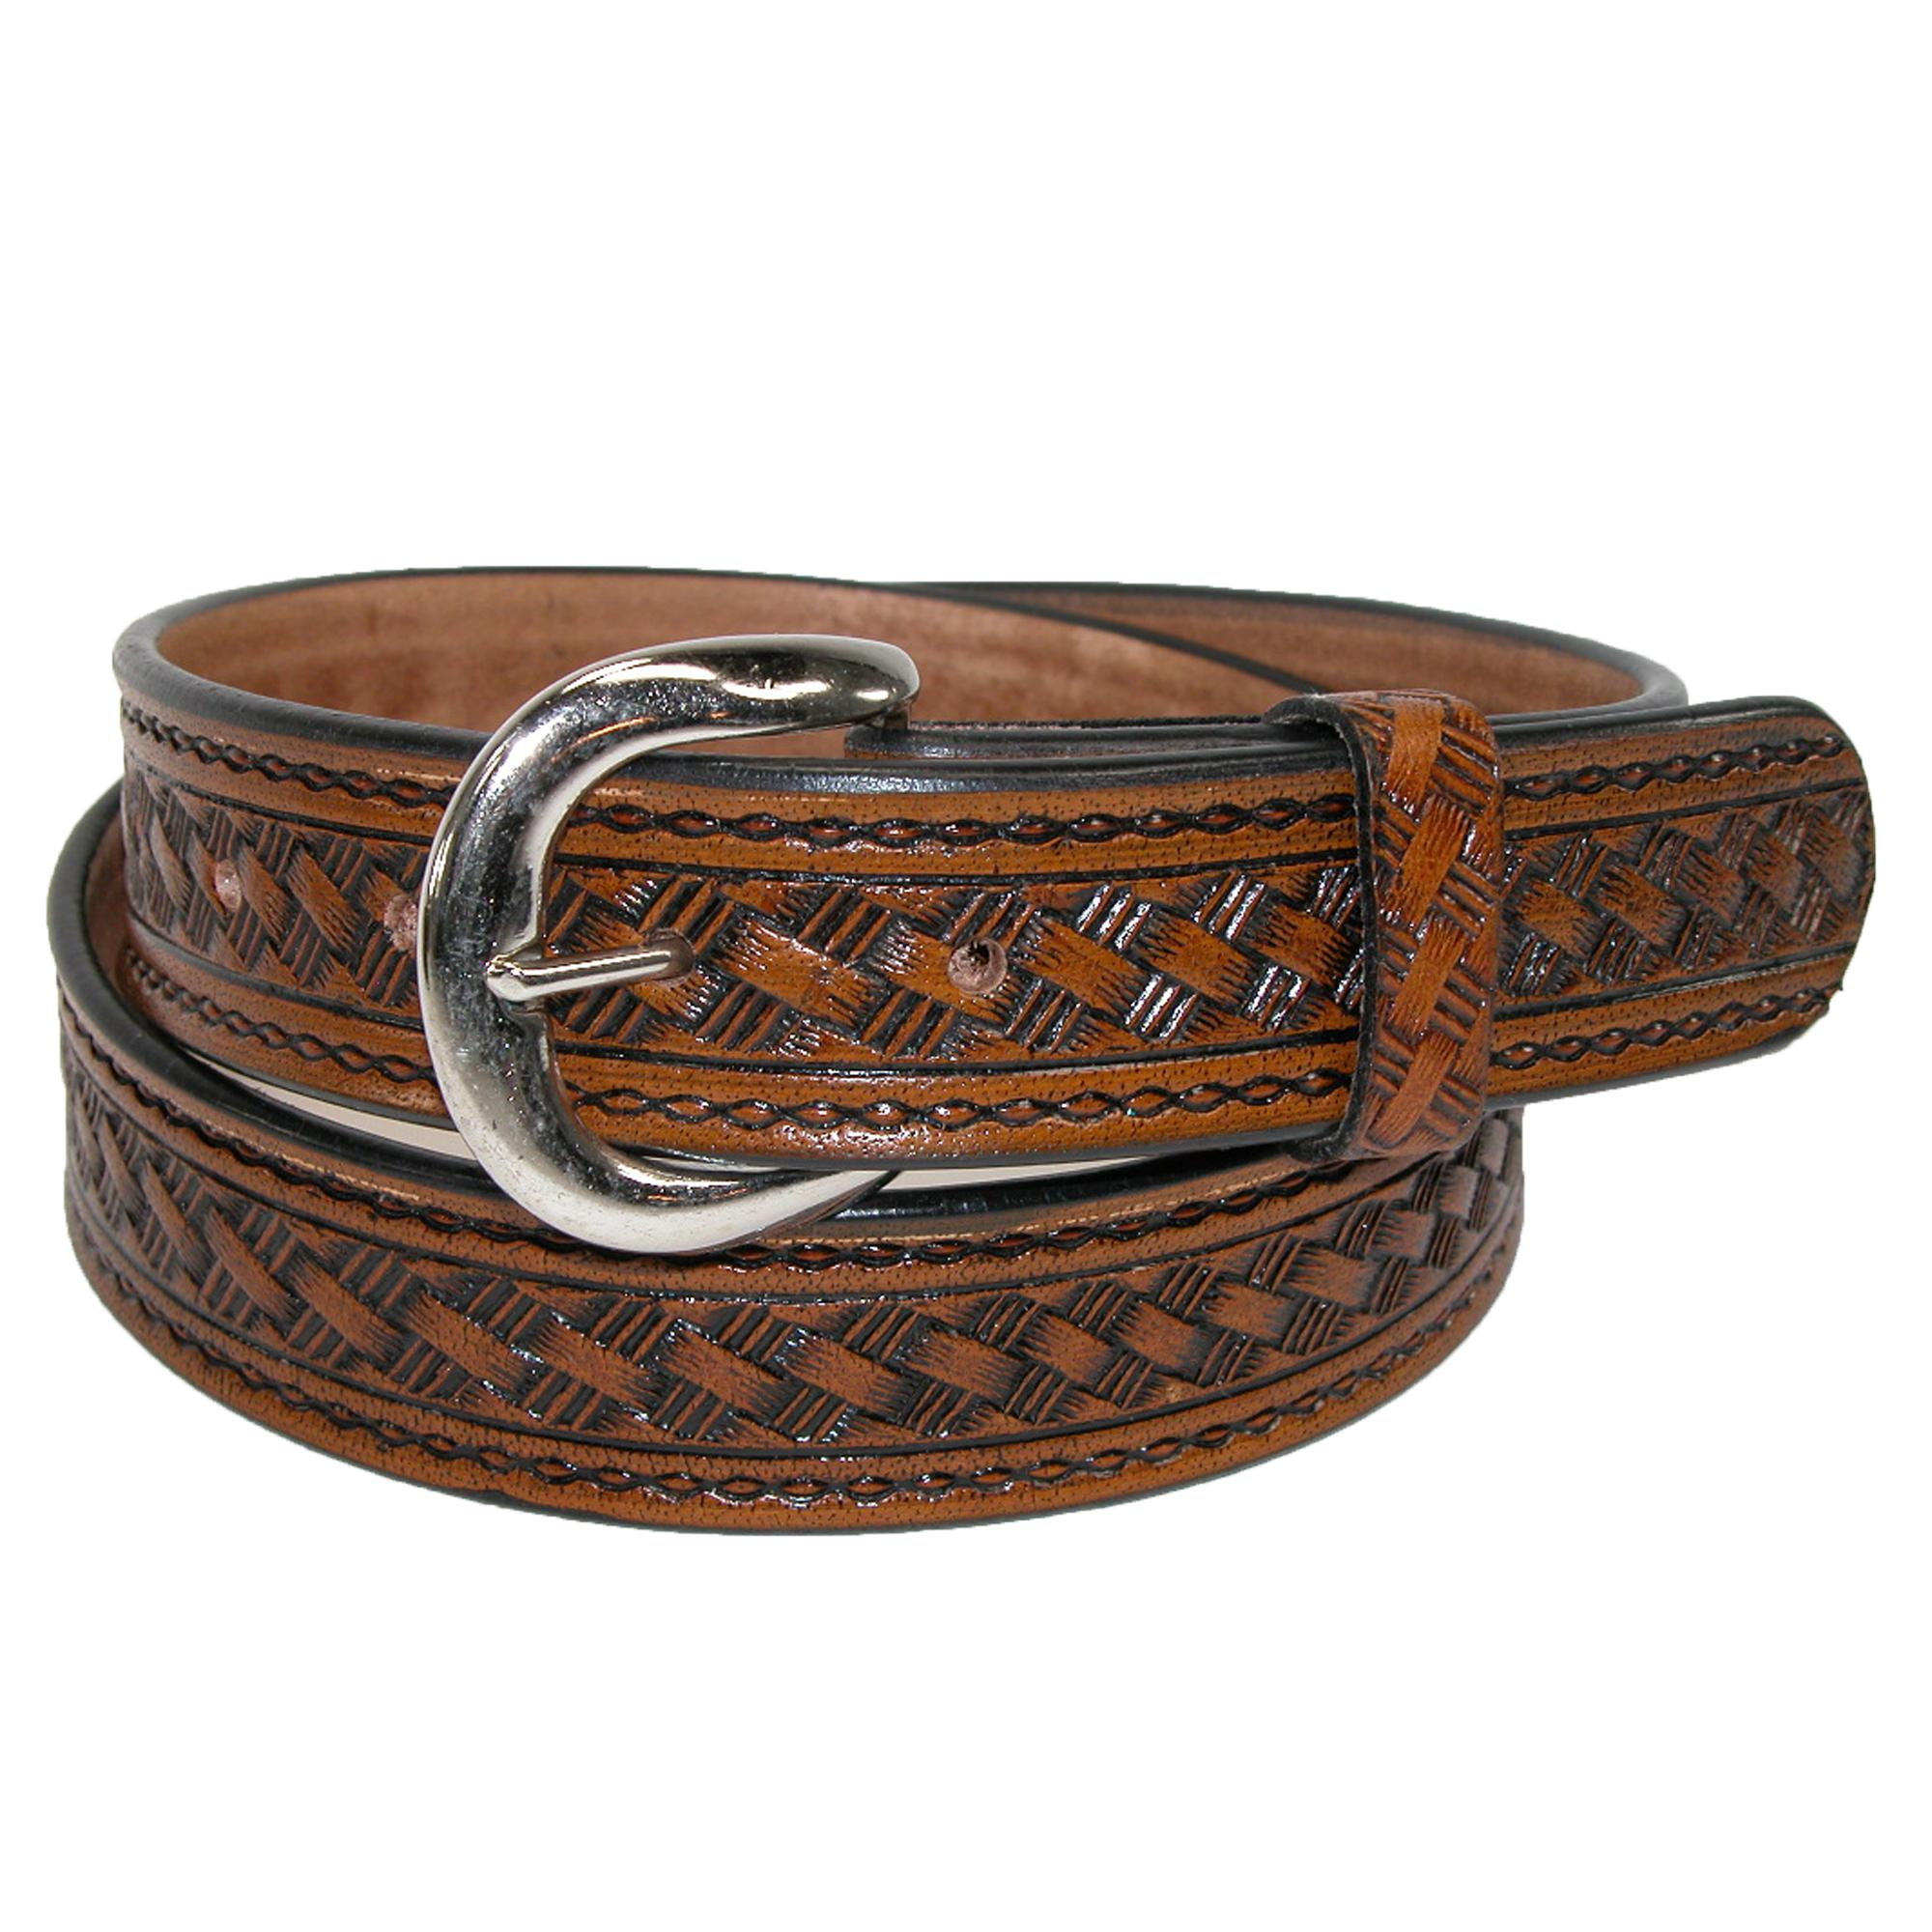 CTM_Men's_Leather_1_3_8_Inch_Western_Belt_with_Removable_Buckle_-